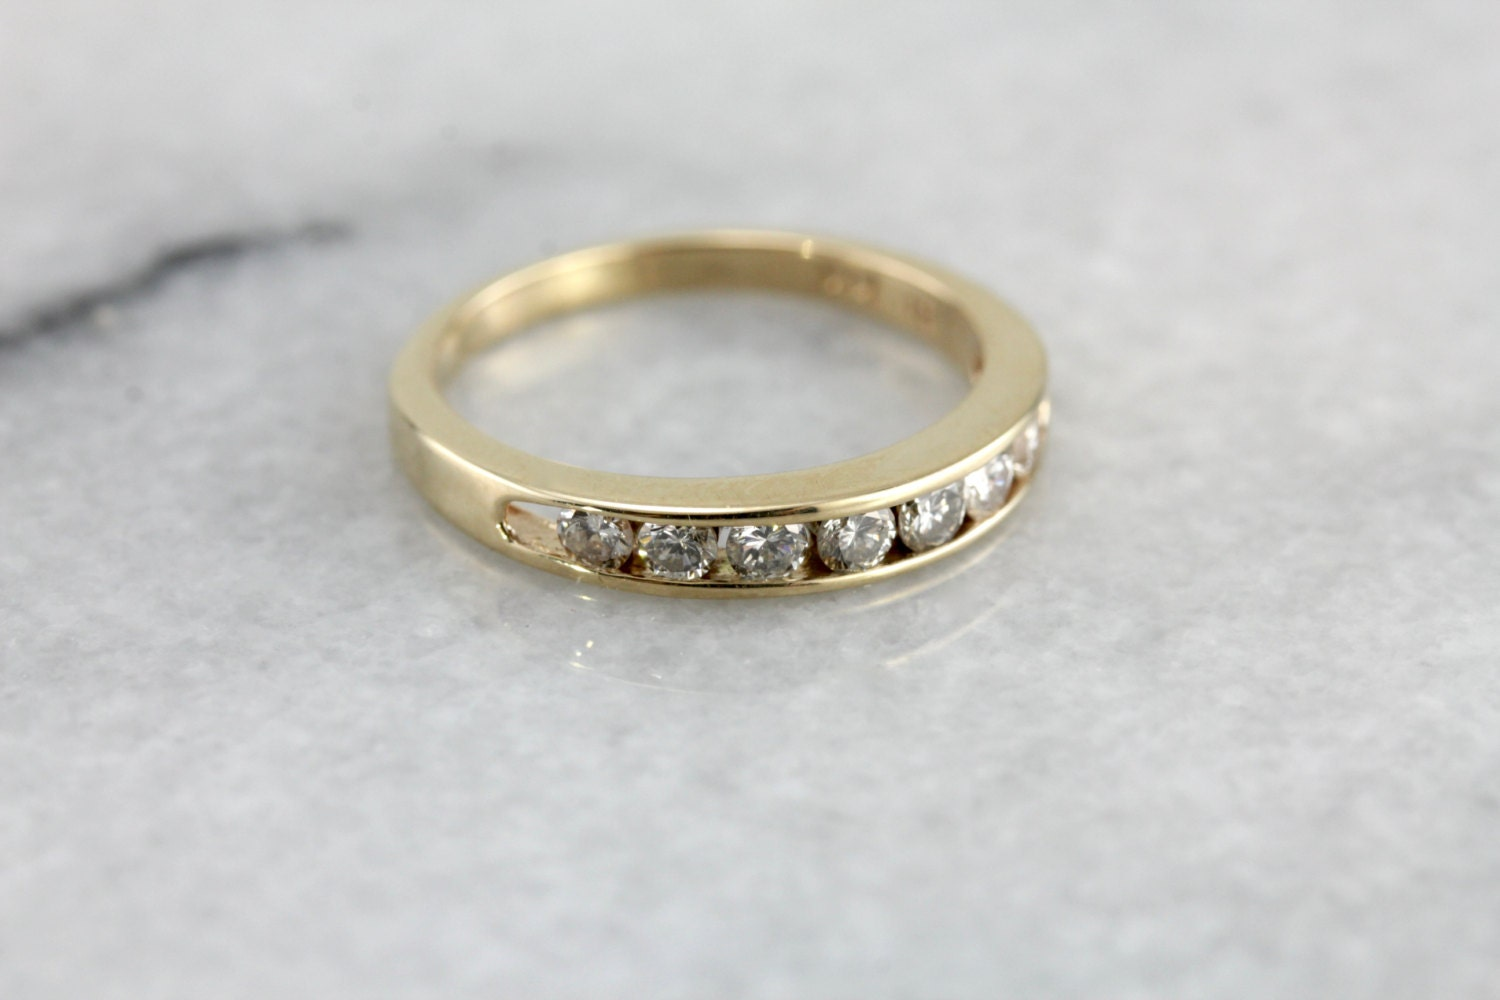 Diamond channel set wedding band in yellow gold gorgeous vintage